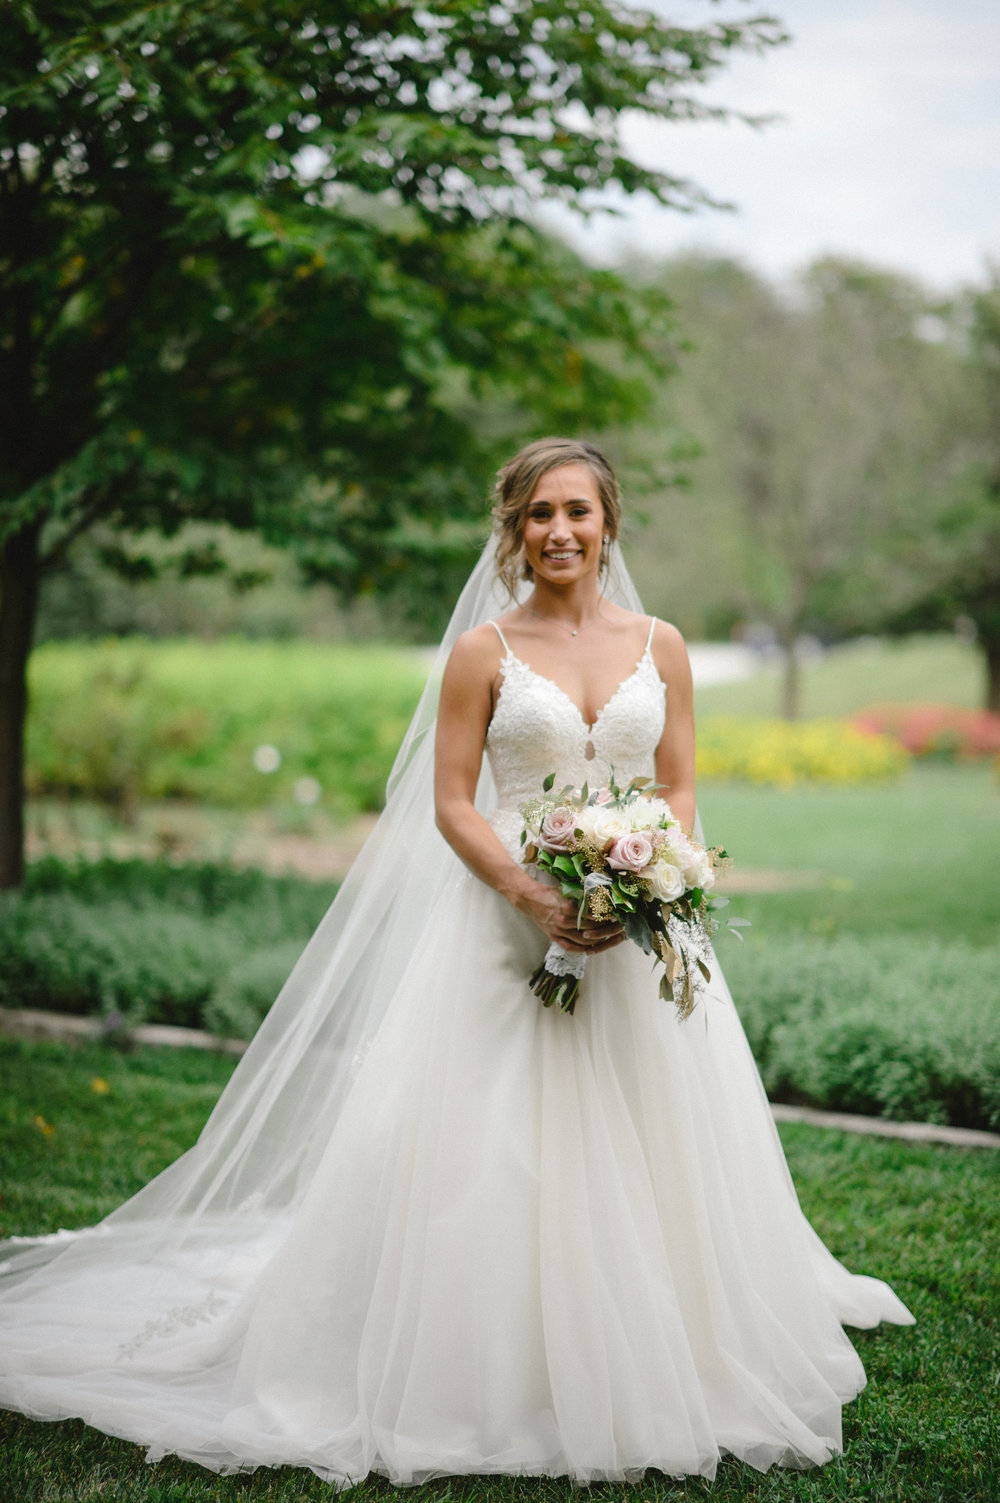 {Photos by: Katherine Murray Photography}